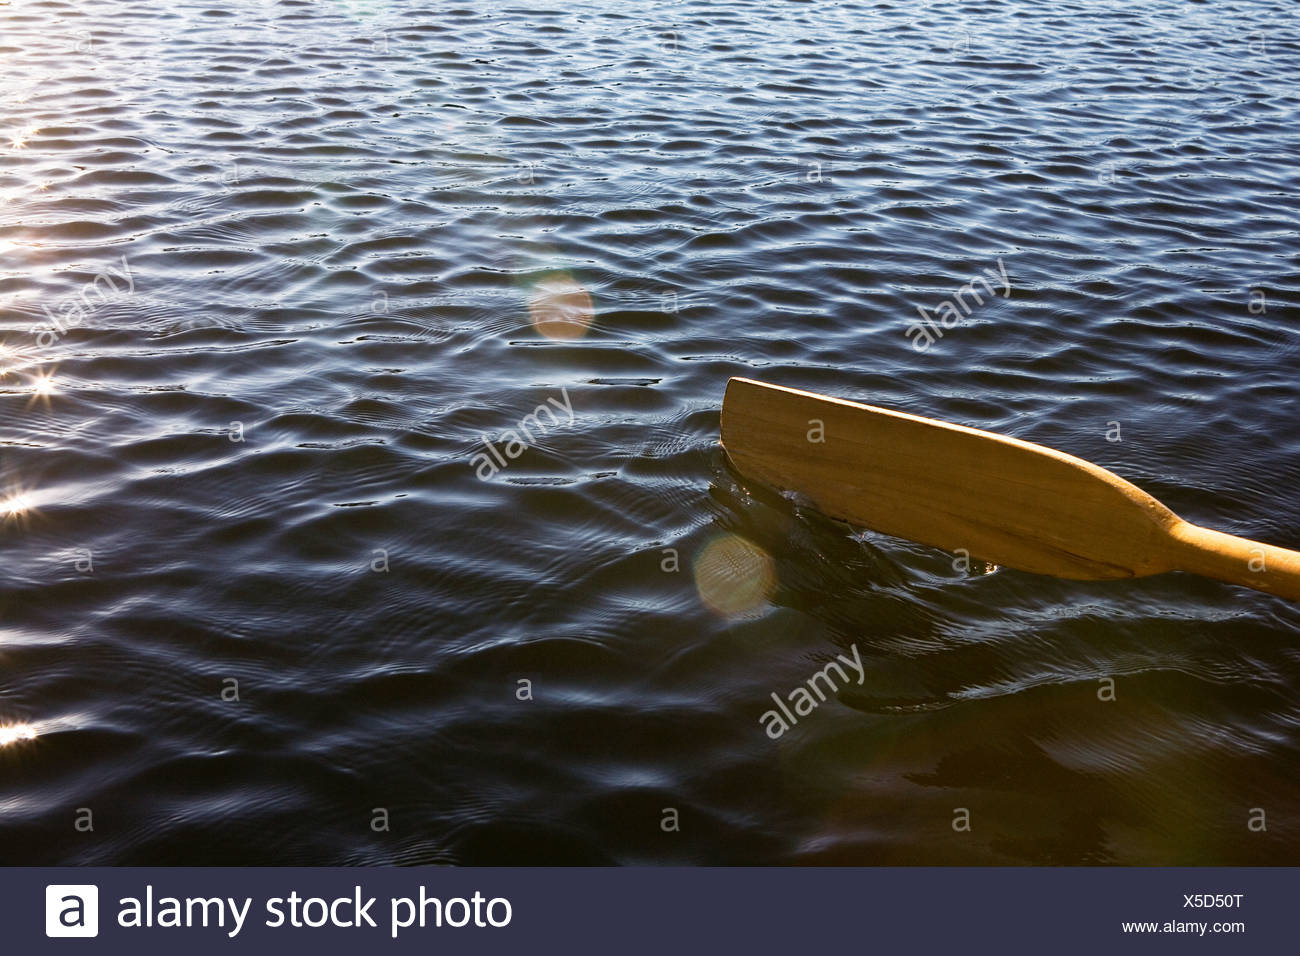 Oar on lake - Stock Image